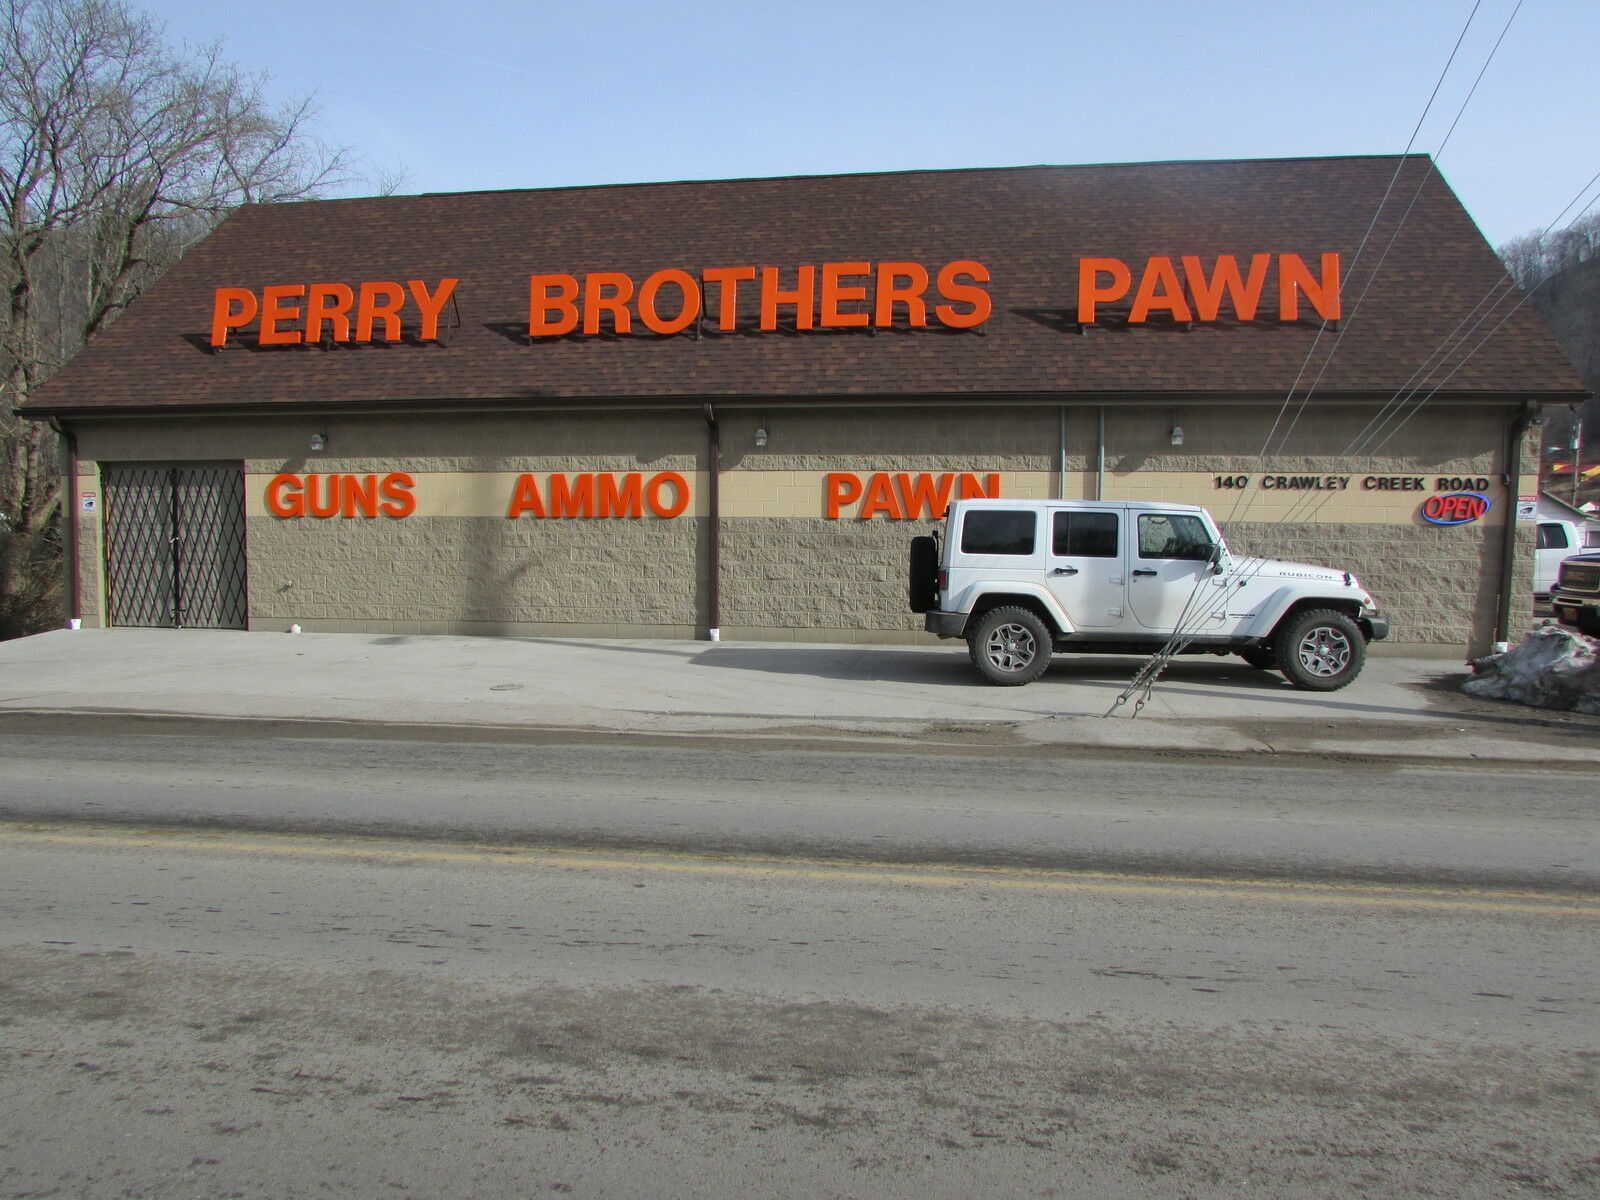 Perry Brothers Pawn